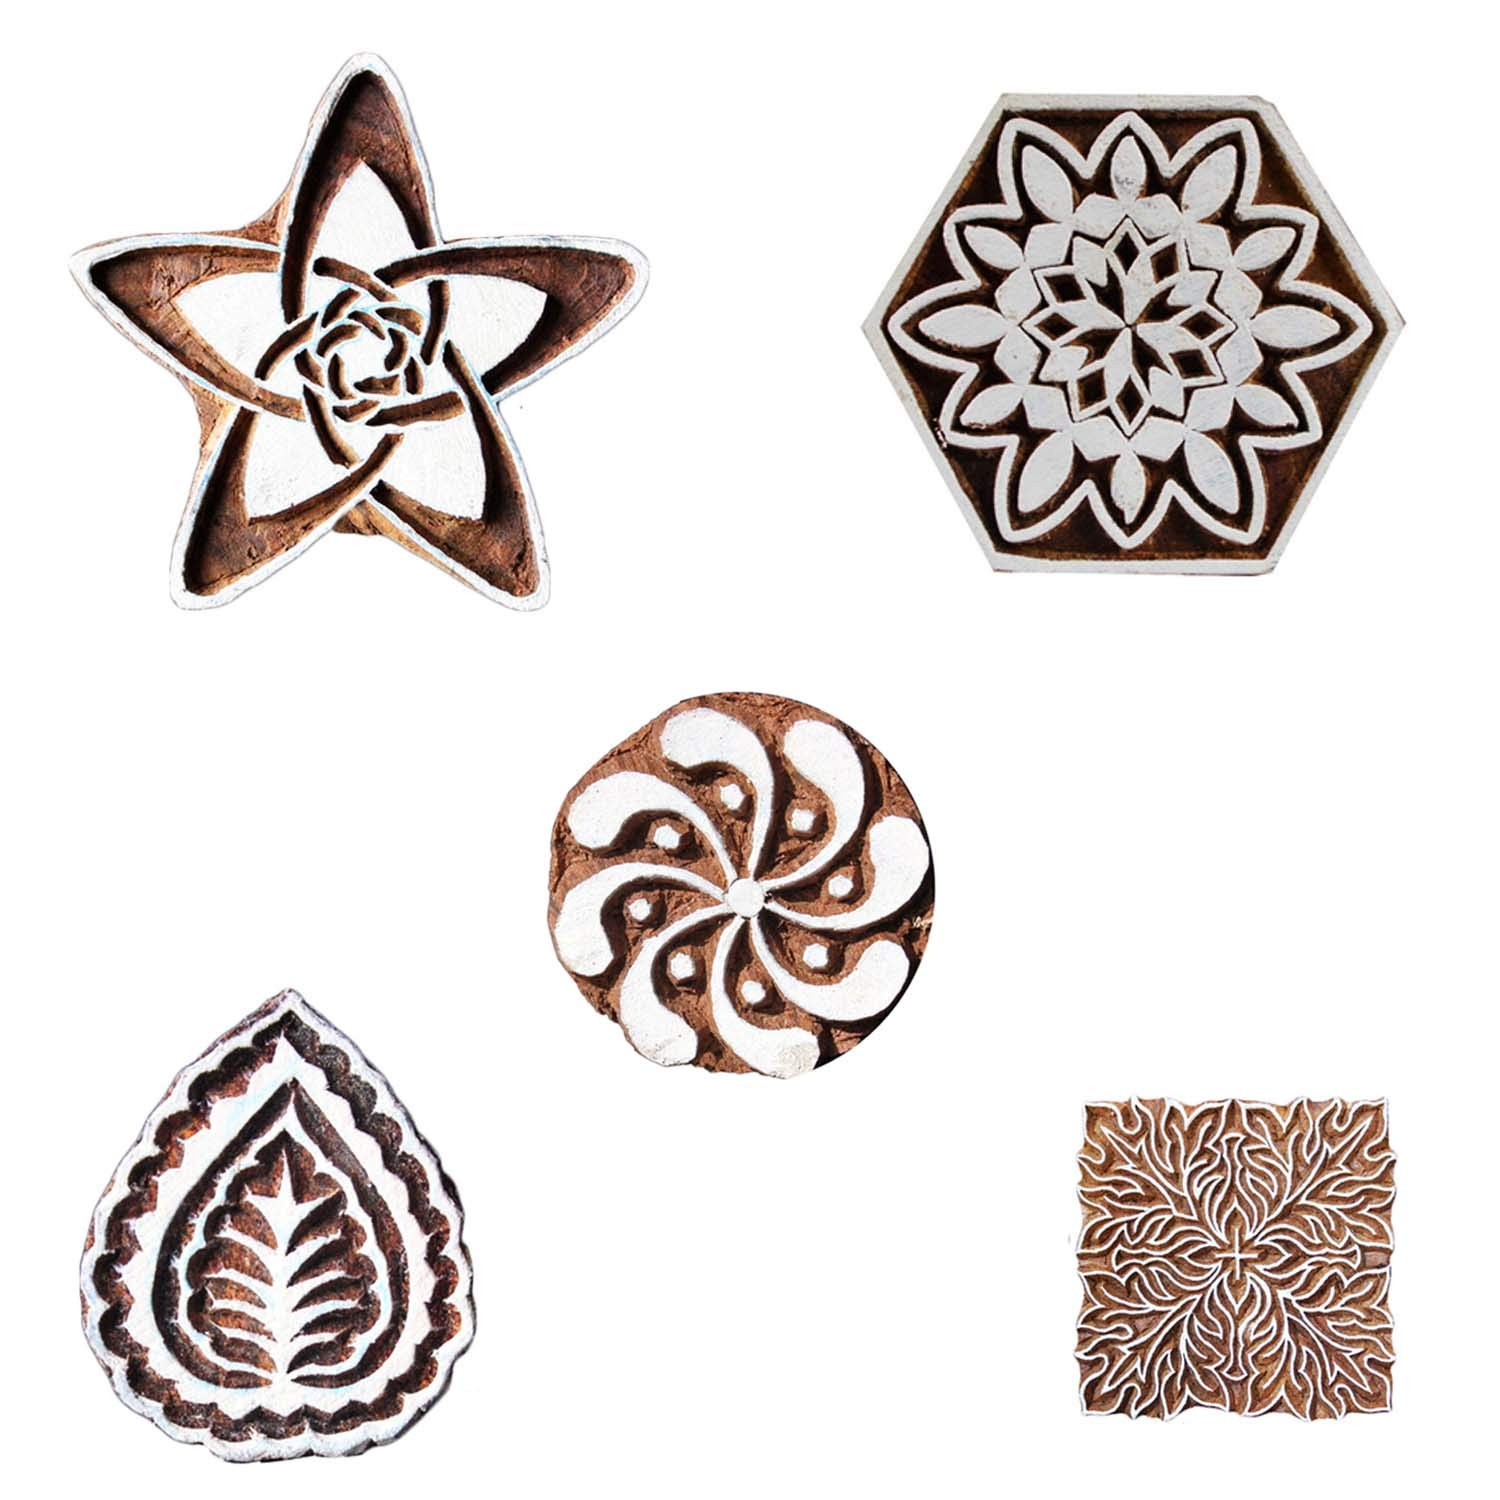 Printing Block Floral Wooden Textile Clay Pottery Craft Heena Tattoo Scrapbook Stamps Pack of 5